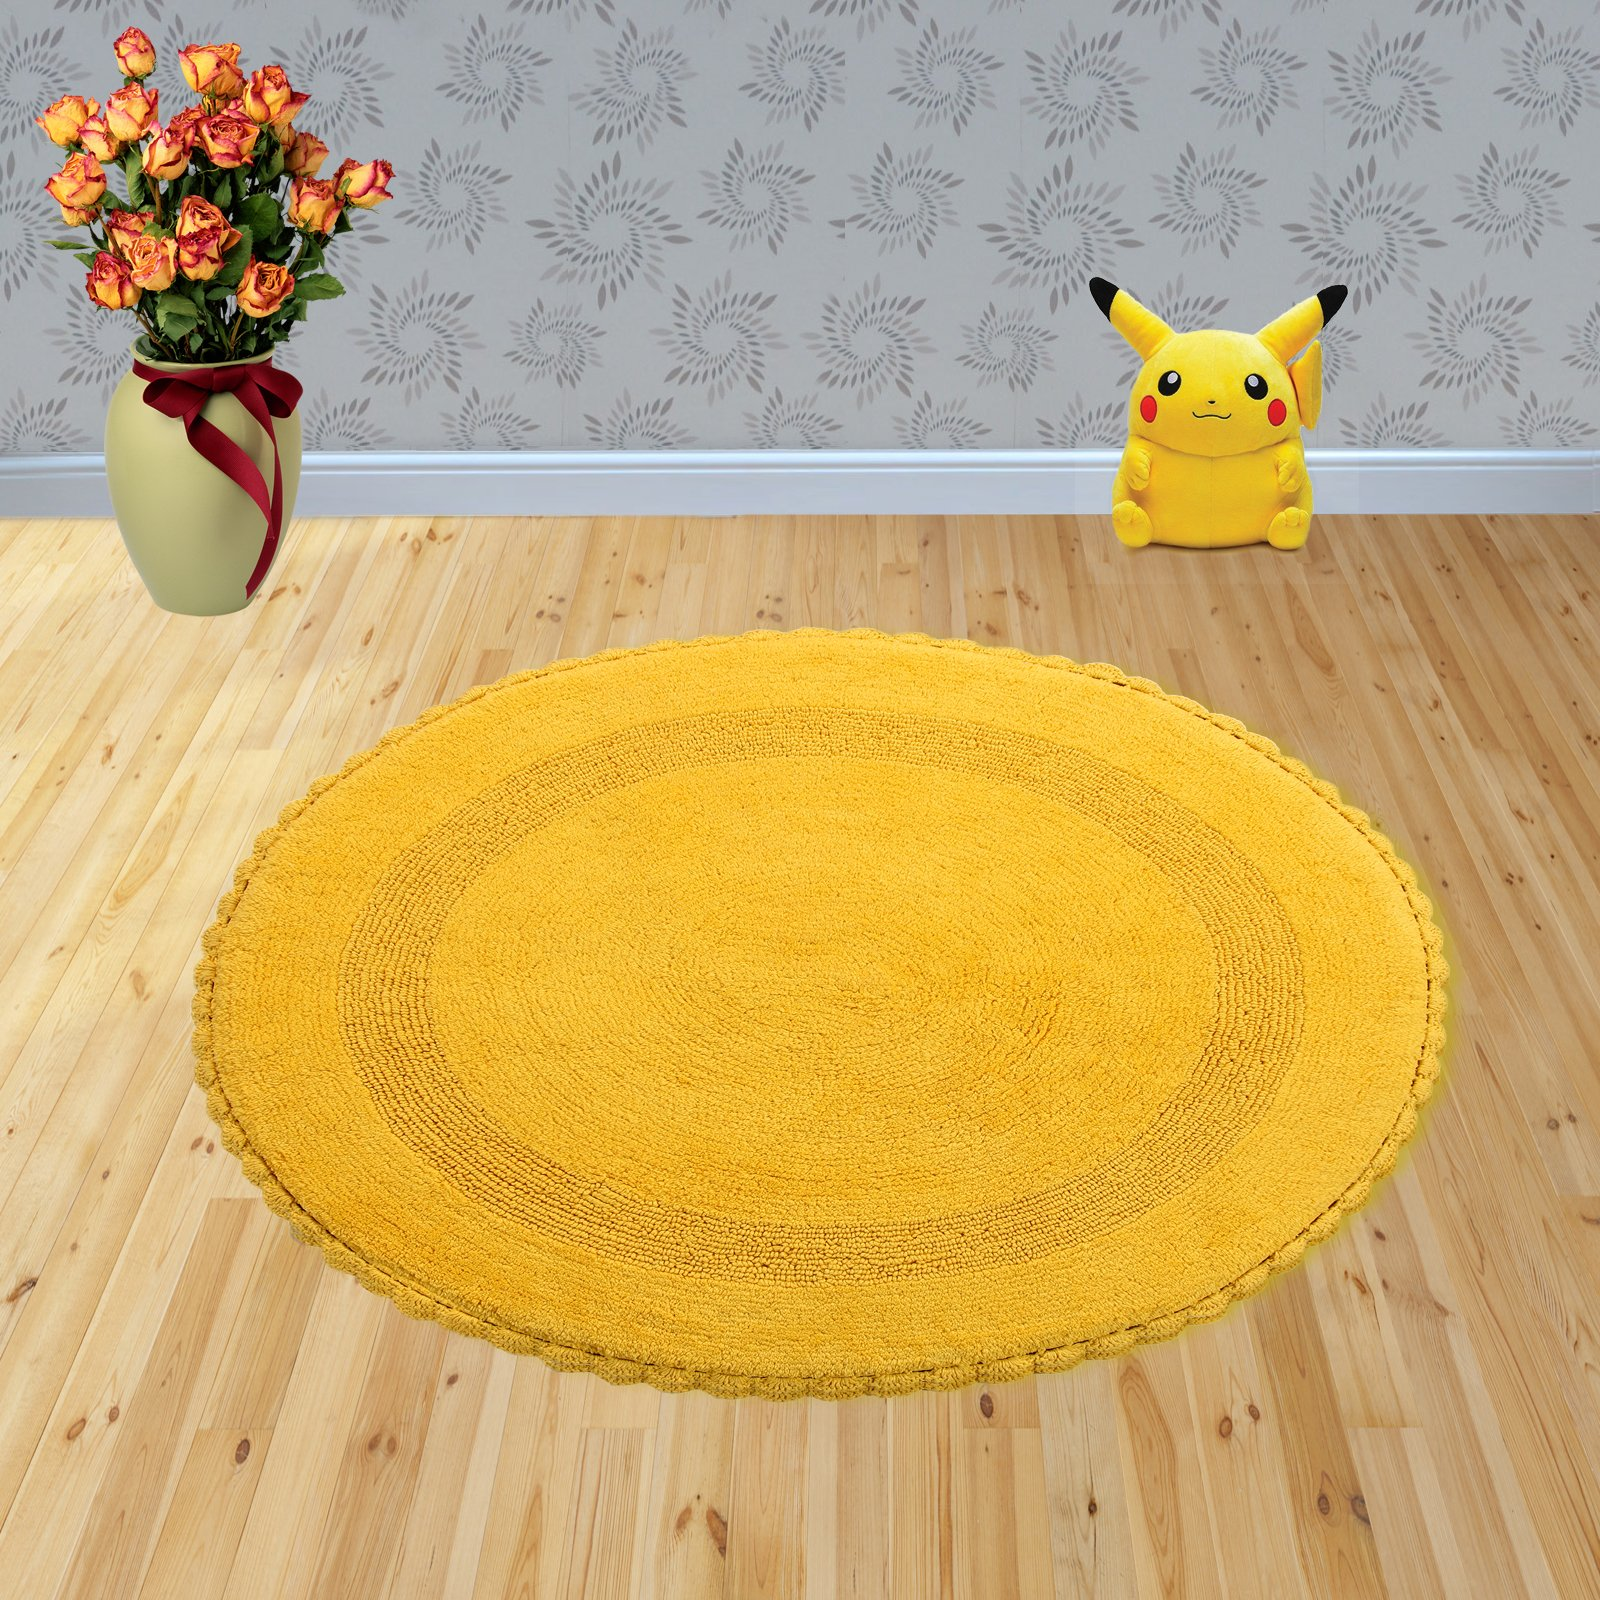 Saffron Fabs Bath Rug 100% Soft Cotton 36 Inch Round, Reversible-Different Pattern On Both Sides, Solid Yellow Color, Hand Knitted Crochet Lace Border, Hand Tufted, 200 GSF Weight, Machine Washable